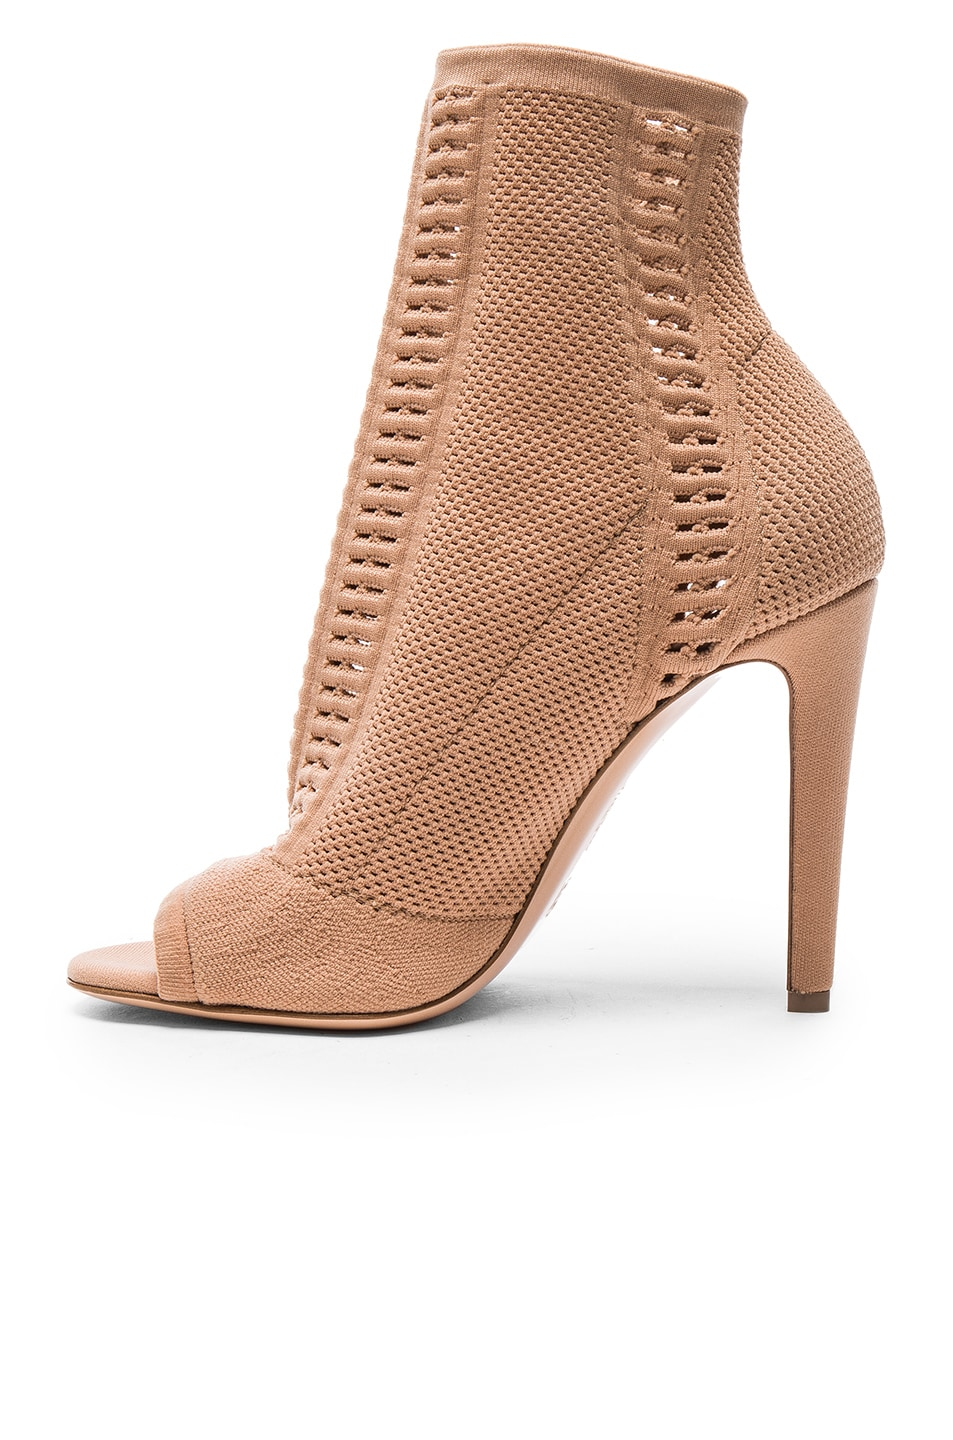 Image 5 of Gianvito Rossi Knit Vires Booties in Praline